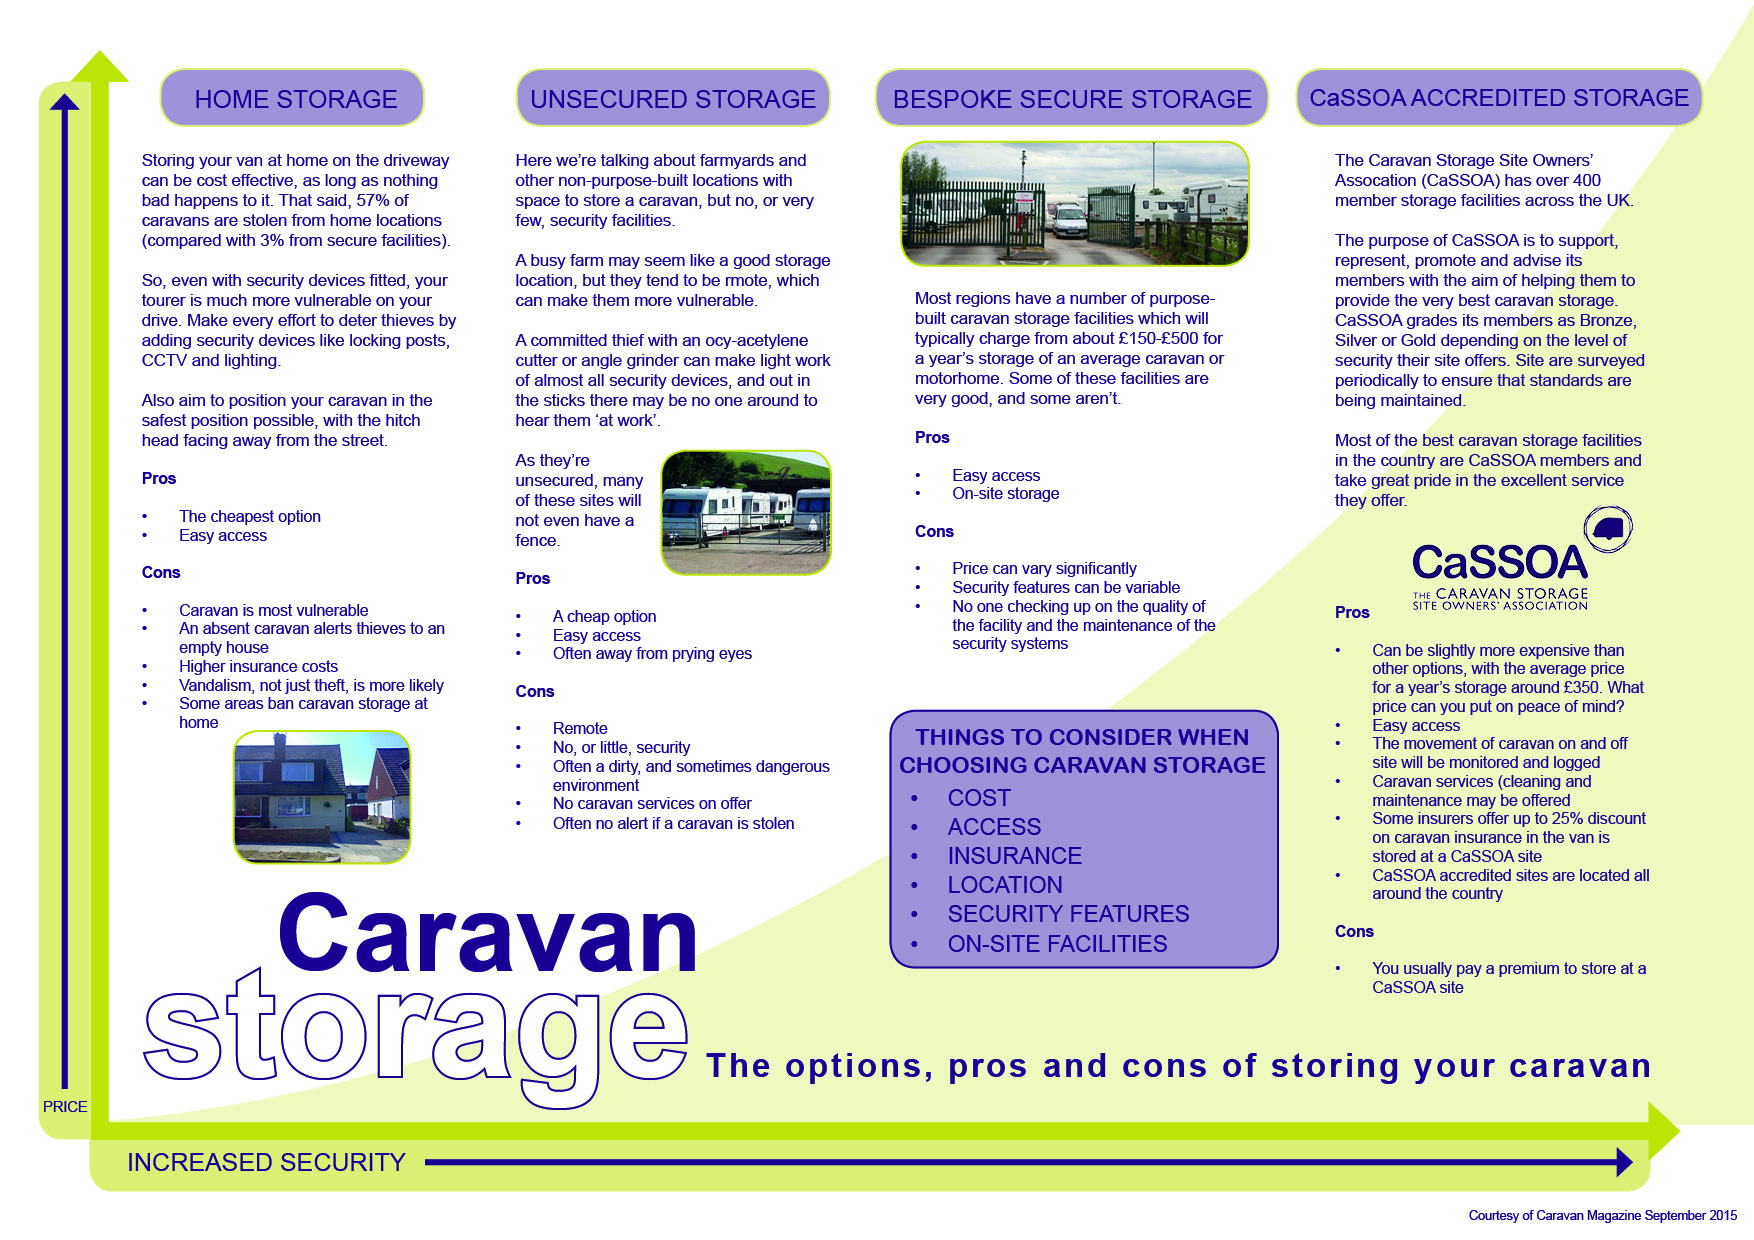 Choosing Caravan Storage Matrix